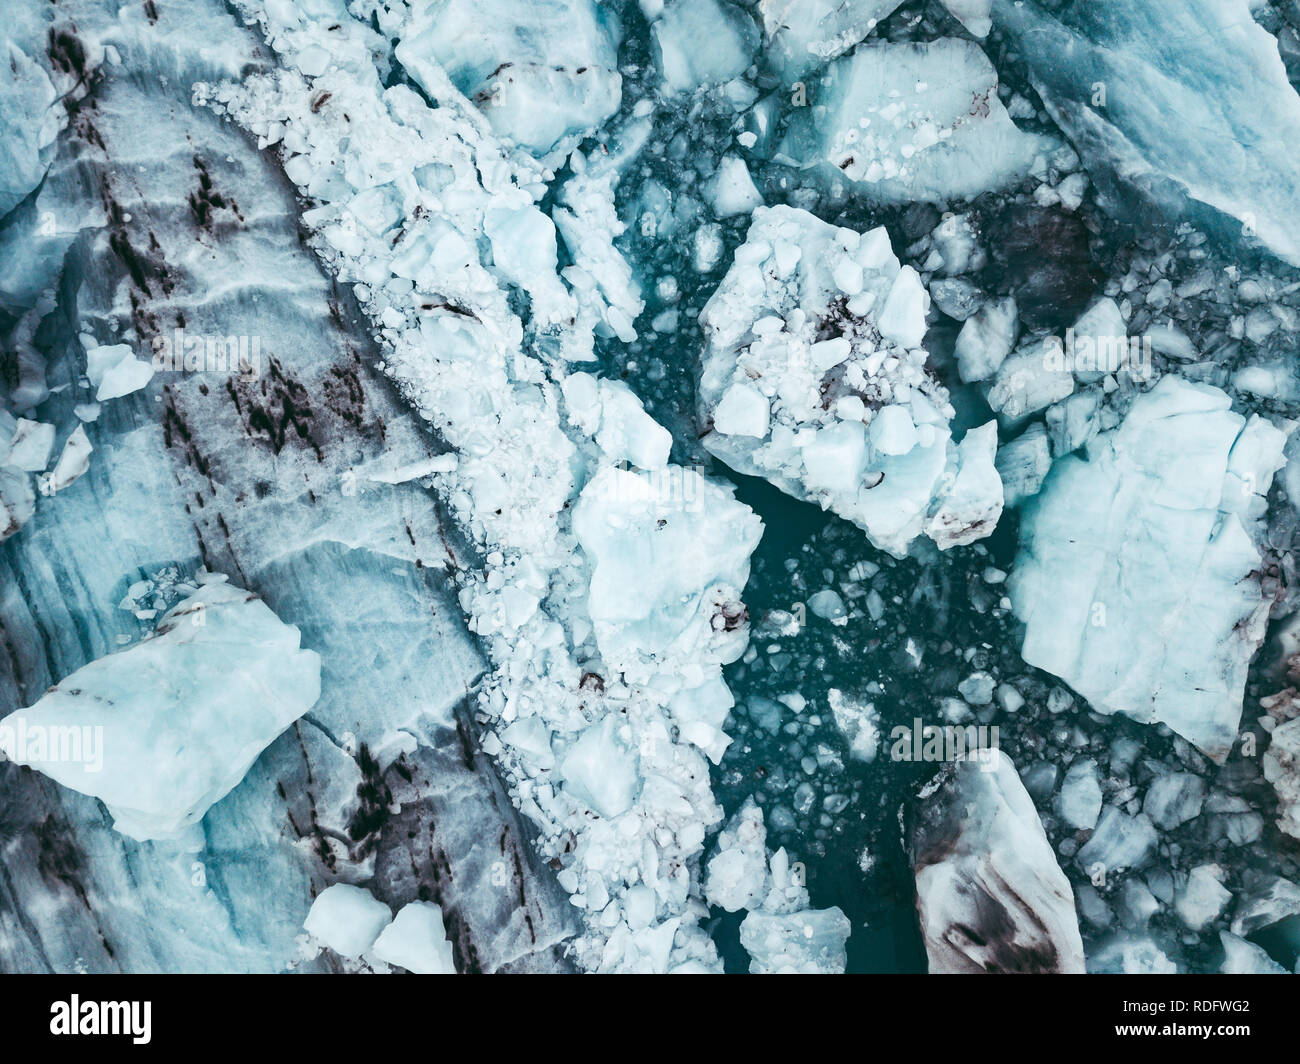 Spectacular glacial lagoon in Iceland with floating icebergs Stock Photo